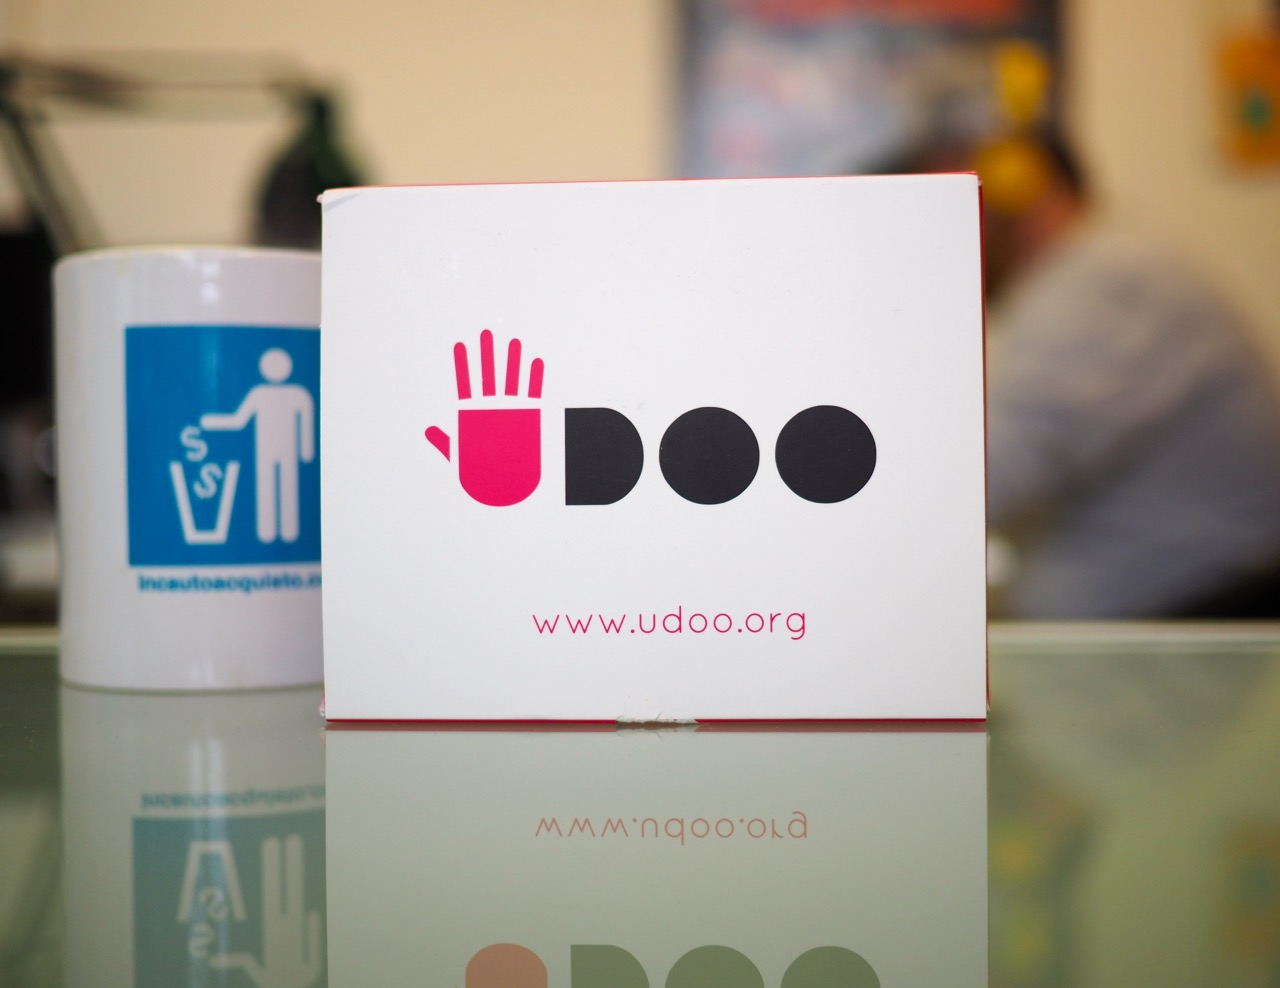 UDOO all in one ARM computer